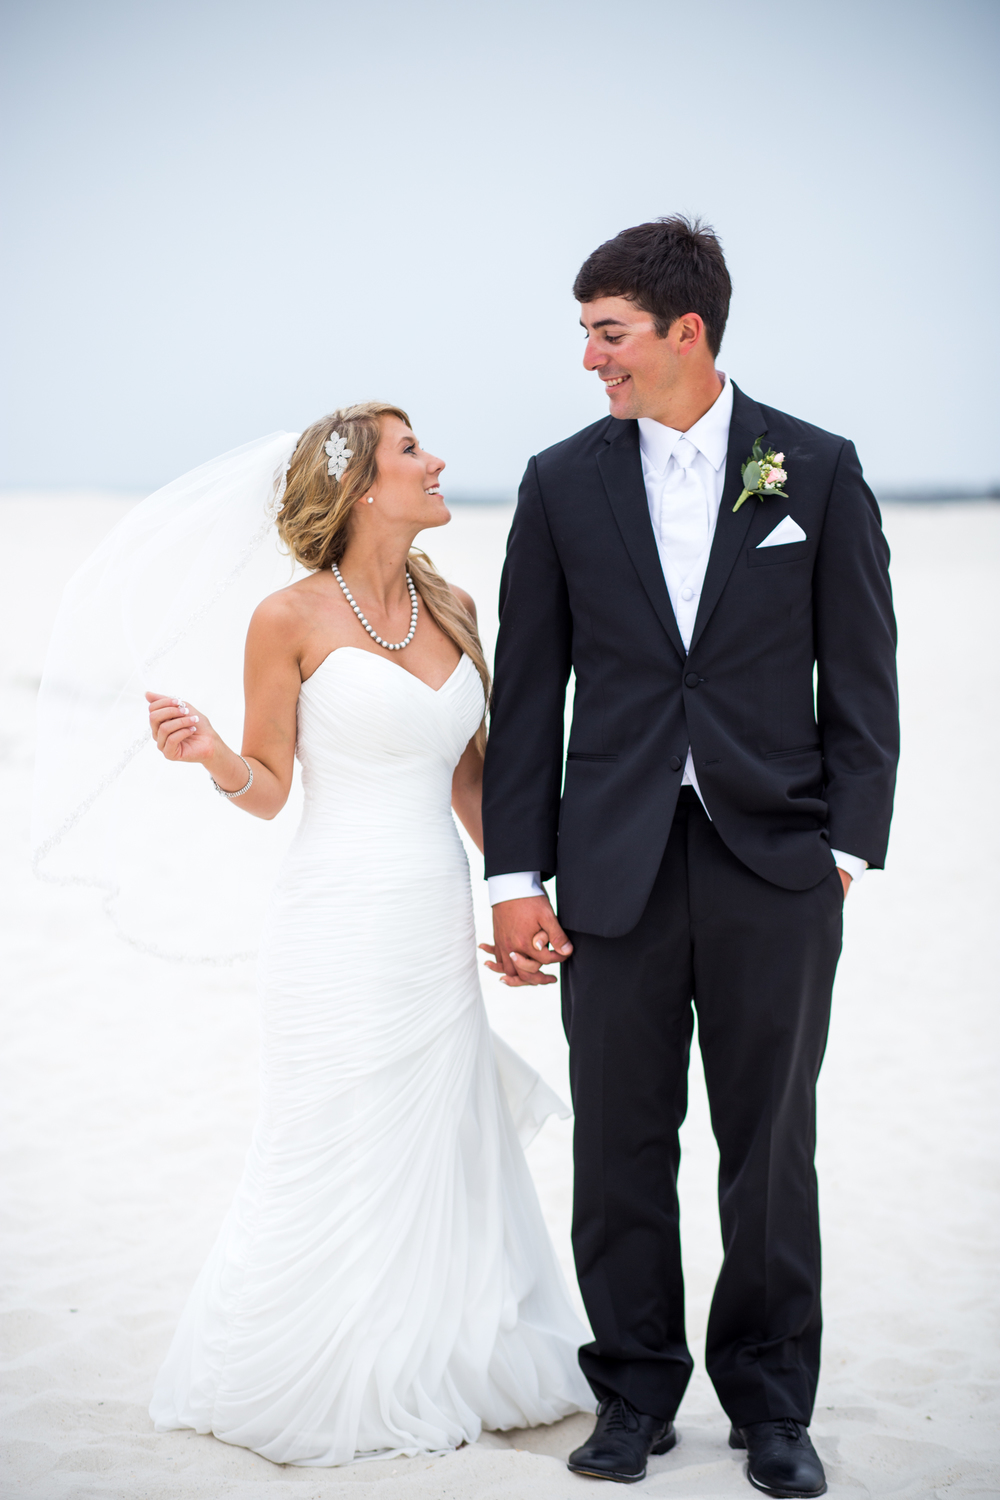 March was full of life & love as Dayton & Chris had a NOLA wedding.  Some of our closes friends, Garrett & Melyssa, finally said 'I do' after 6 years of dating!  & the Gaonas made it official in their gorgeous beachside nuptials!